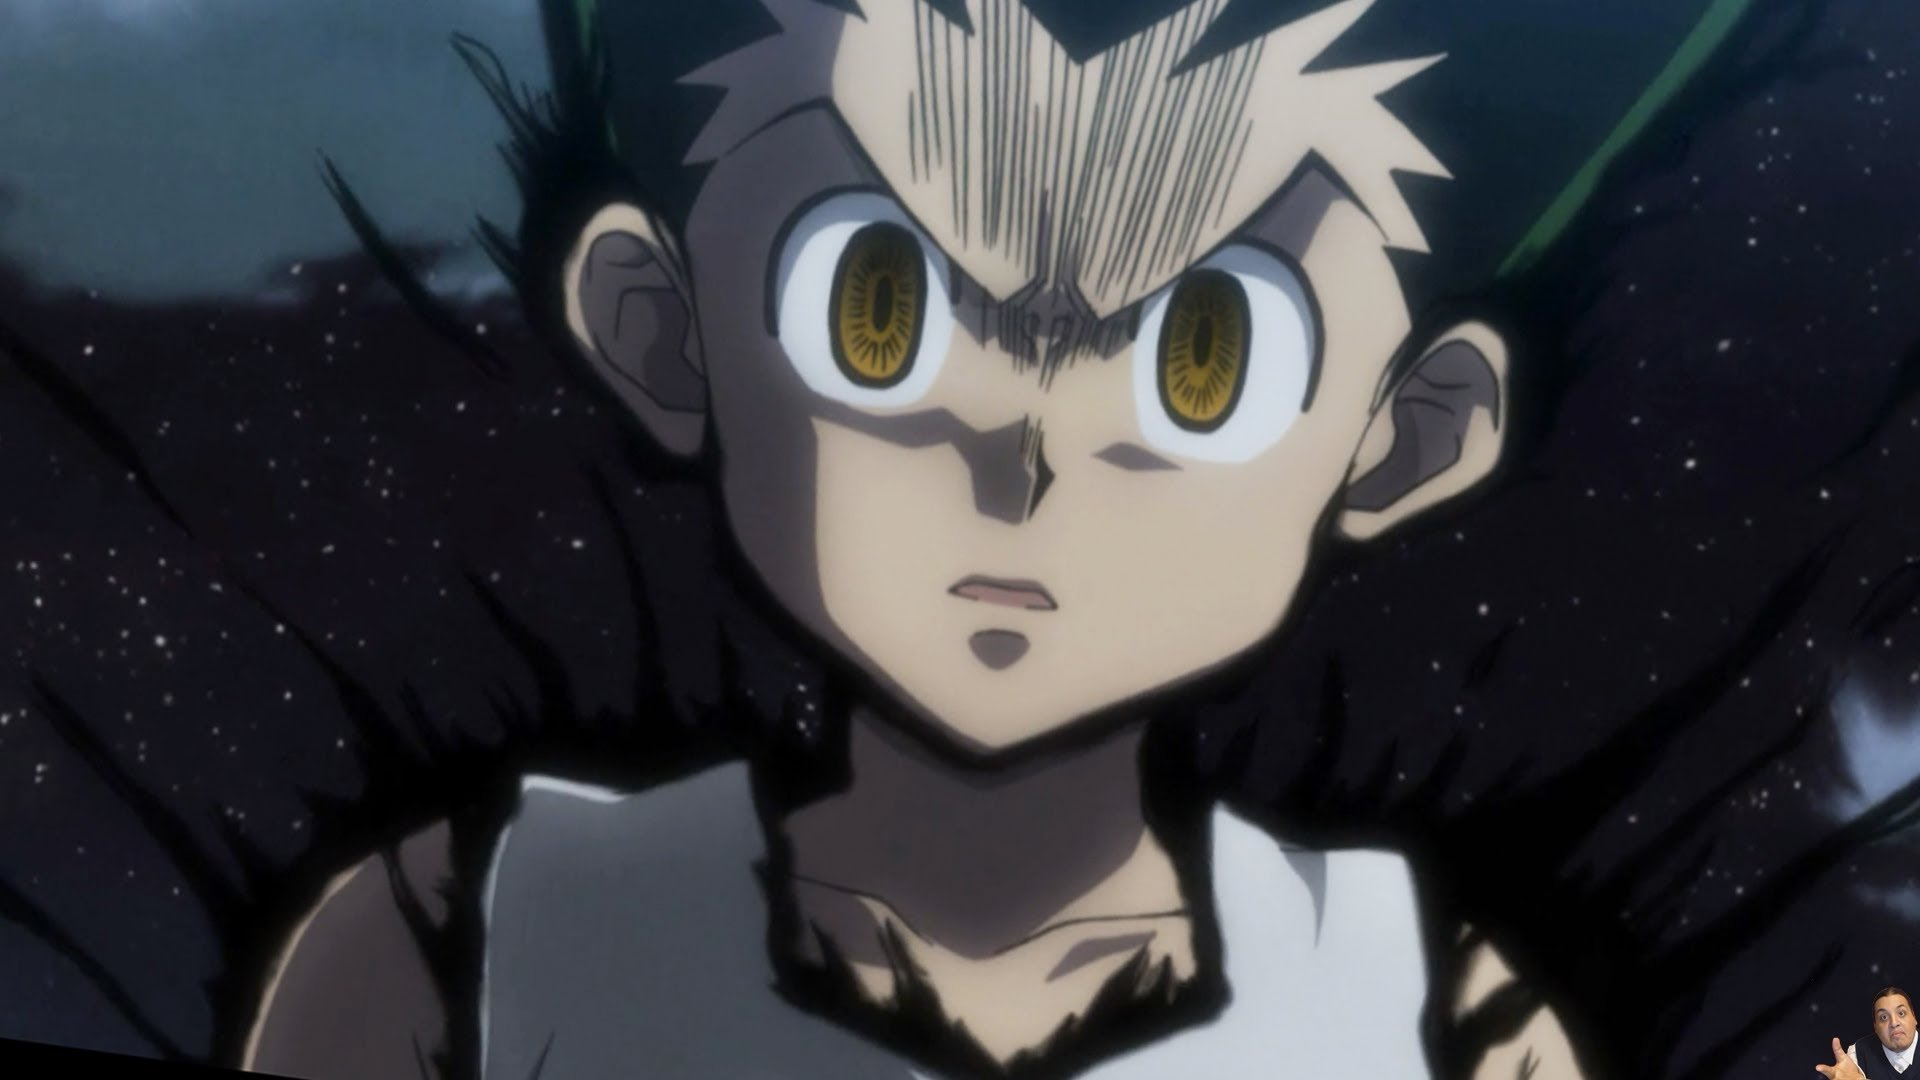 Awesome Gon Freecss free wallpaper ID:10891 for full hd desktop